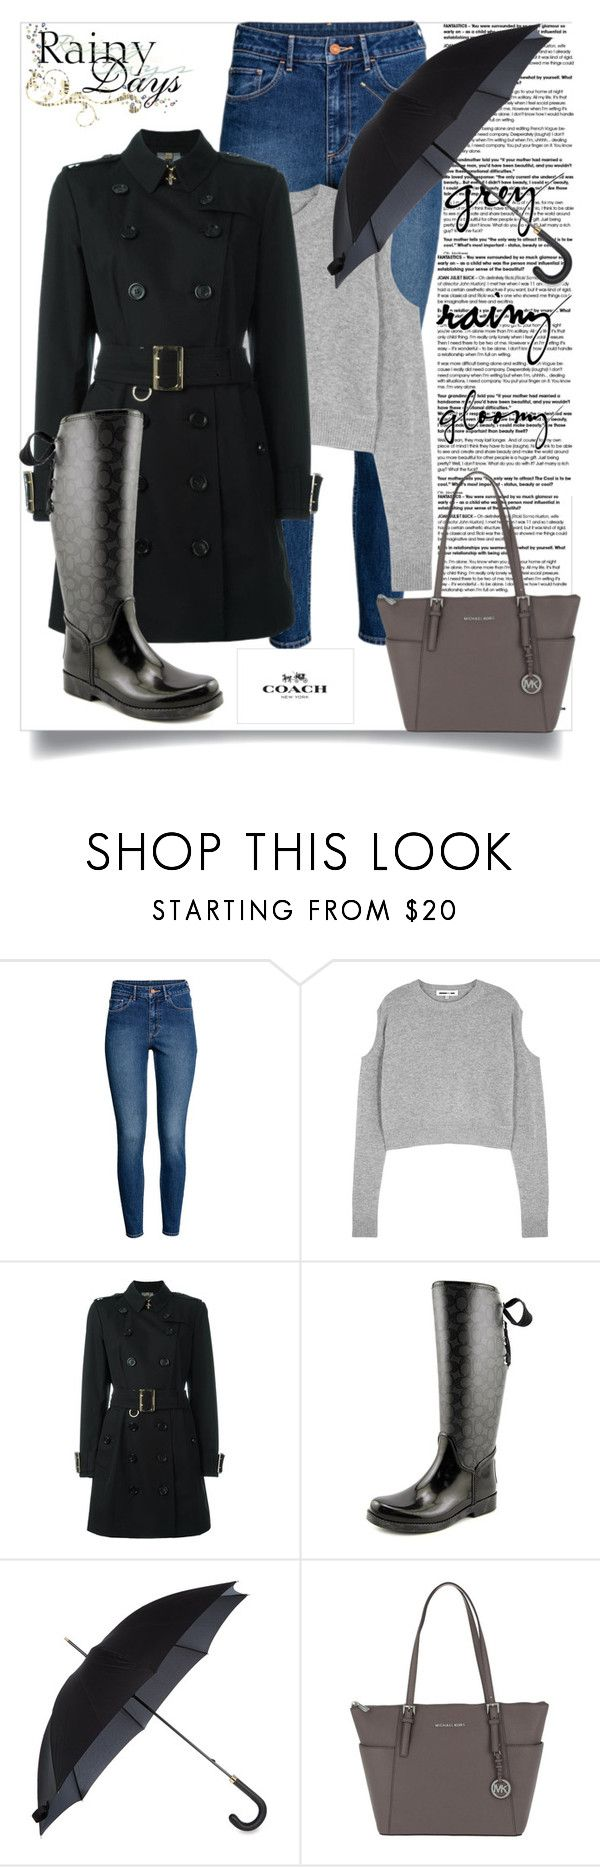 """""""I Love a Rainy Night"""" by perezbarrios on Polyvore featuring H&M, McQ by Alexander McQueen, Burberry, Fulton and MICHAEL Michael Kors"""